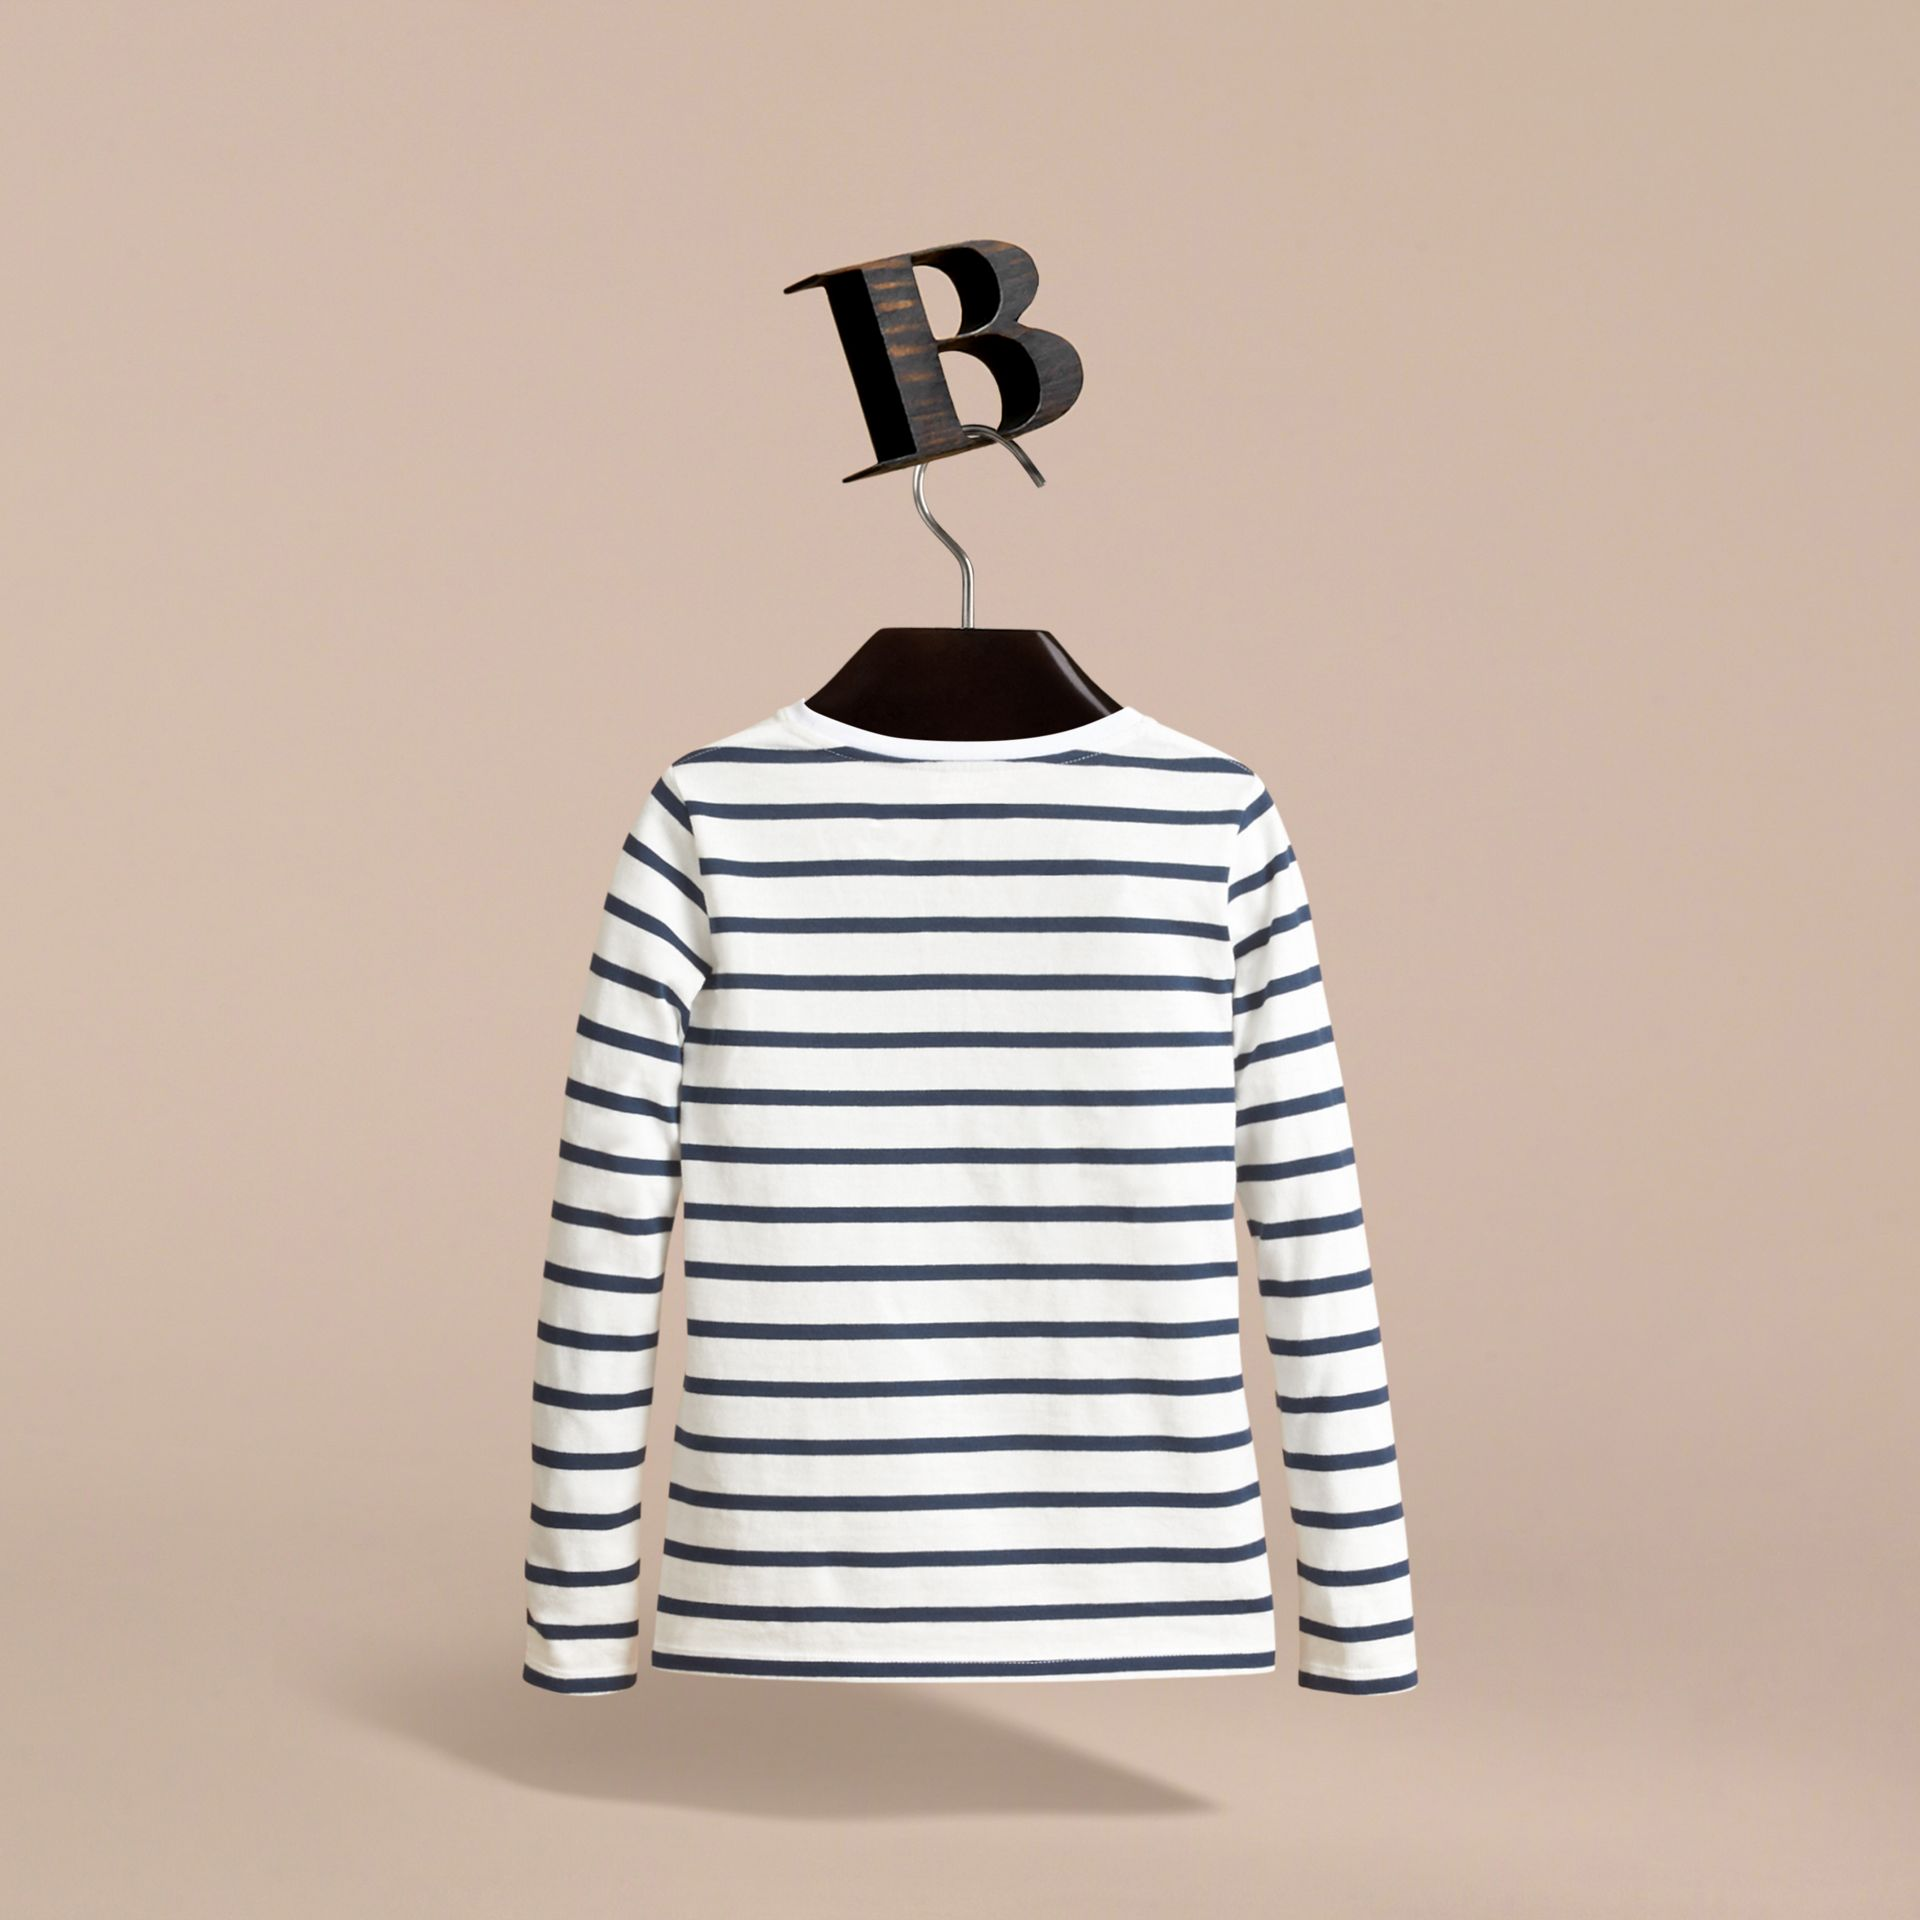 Pallas Heads Motif Breton Stripe Cotton Top in Indigo | Burberry Australia - gallery image 4